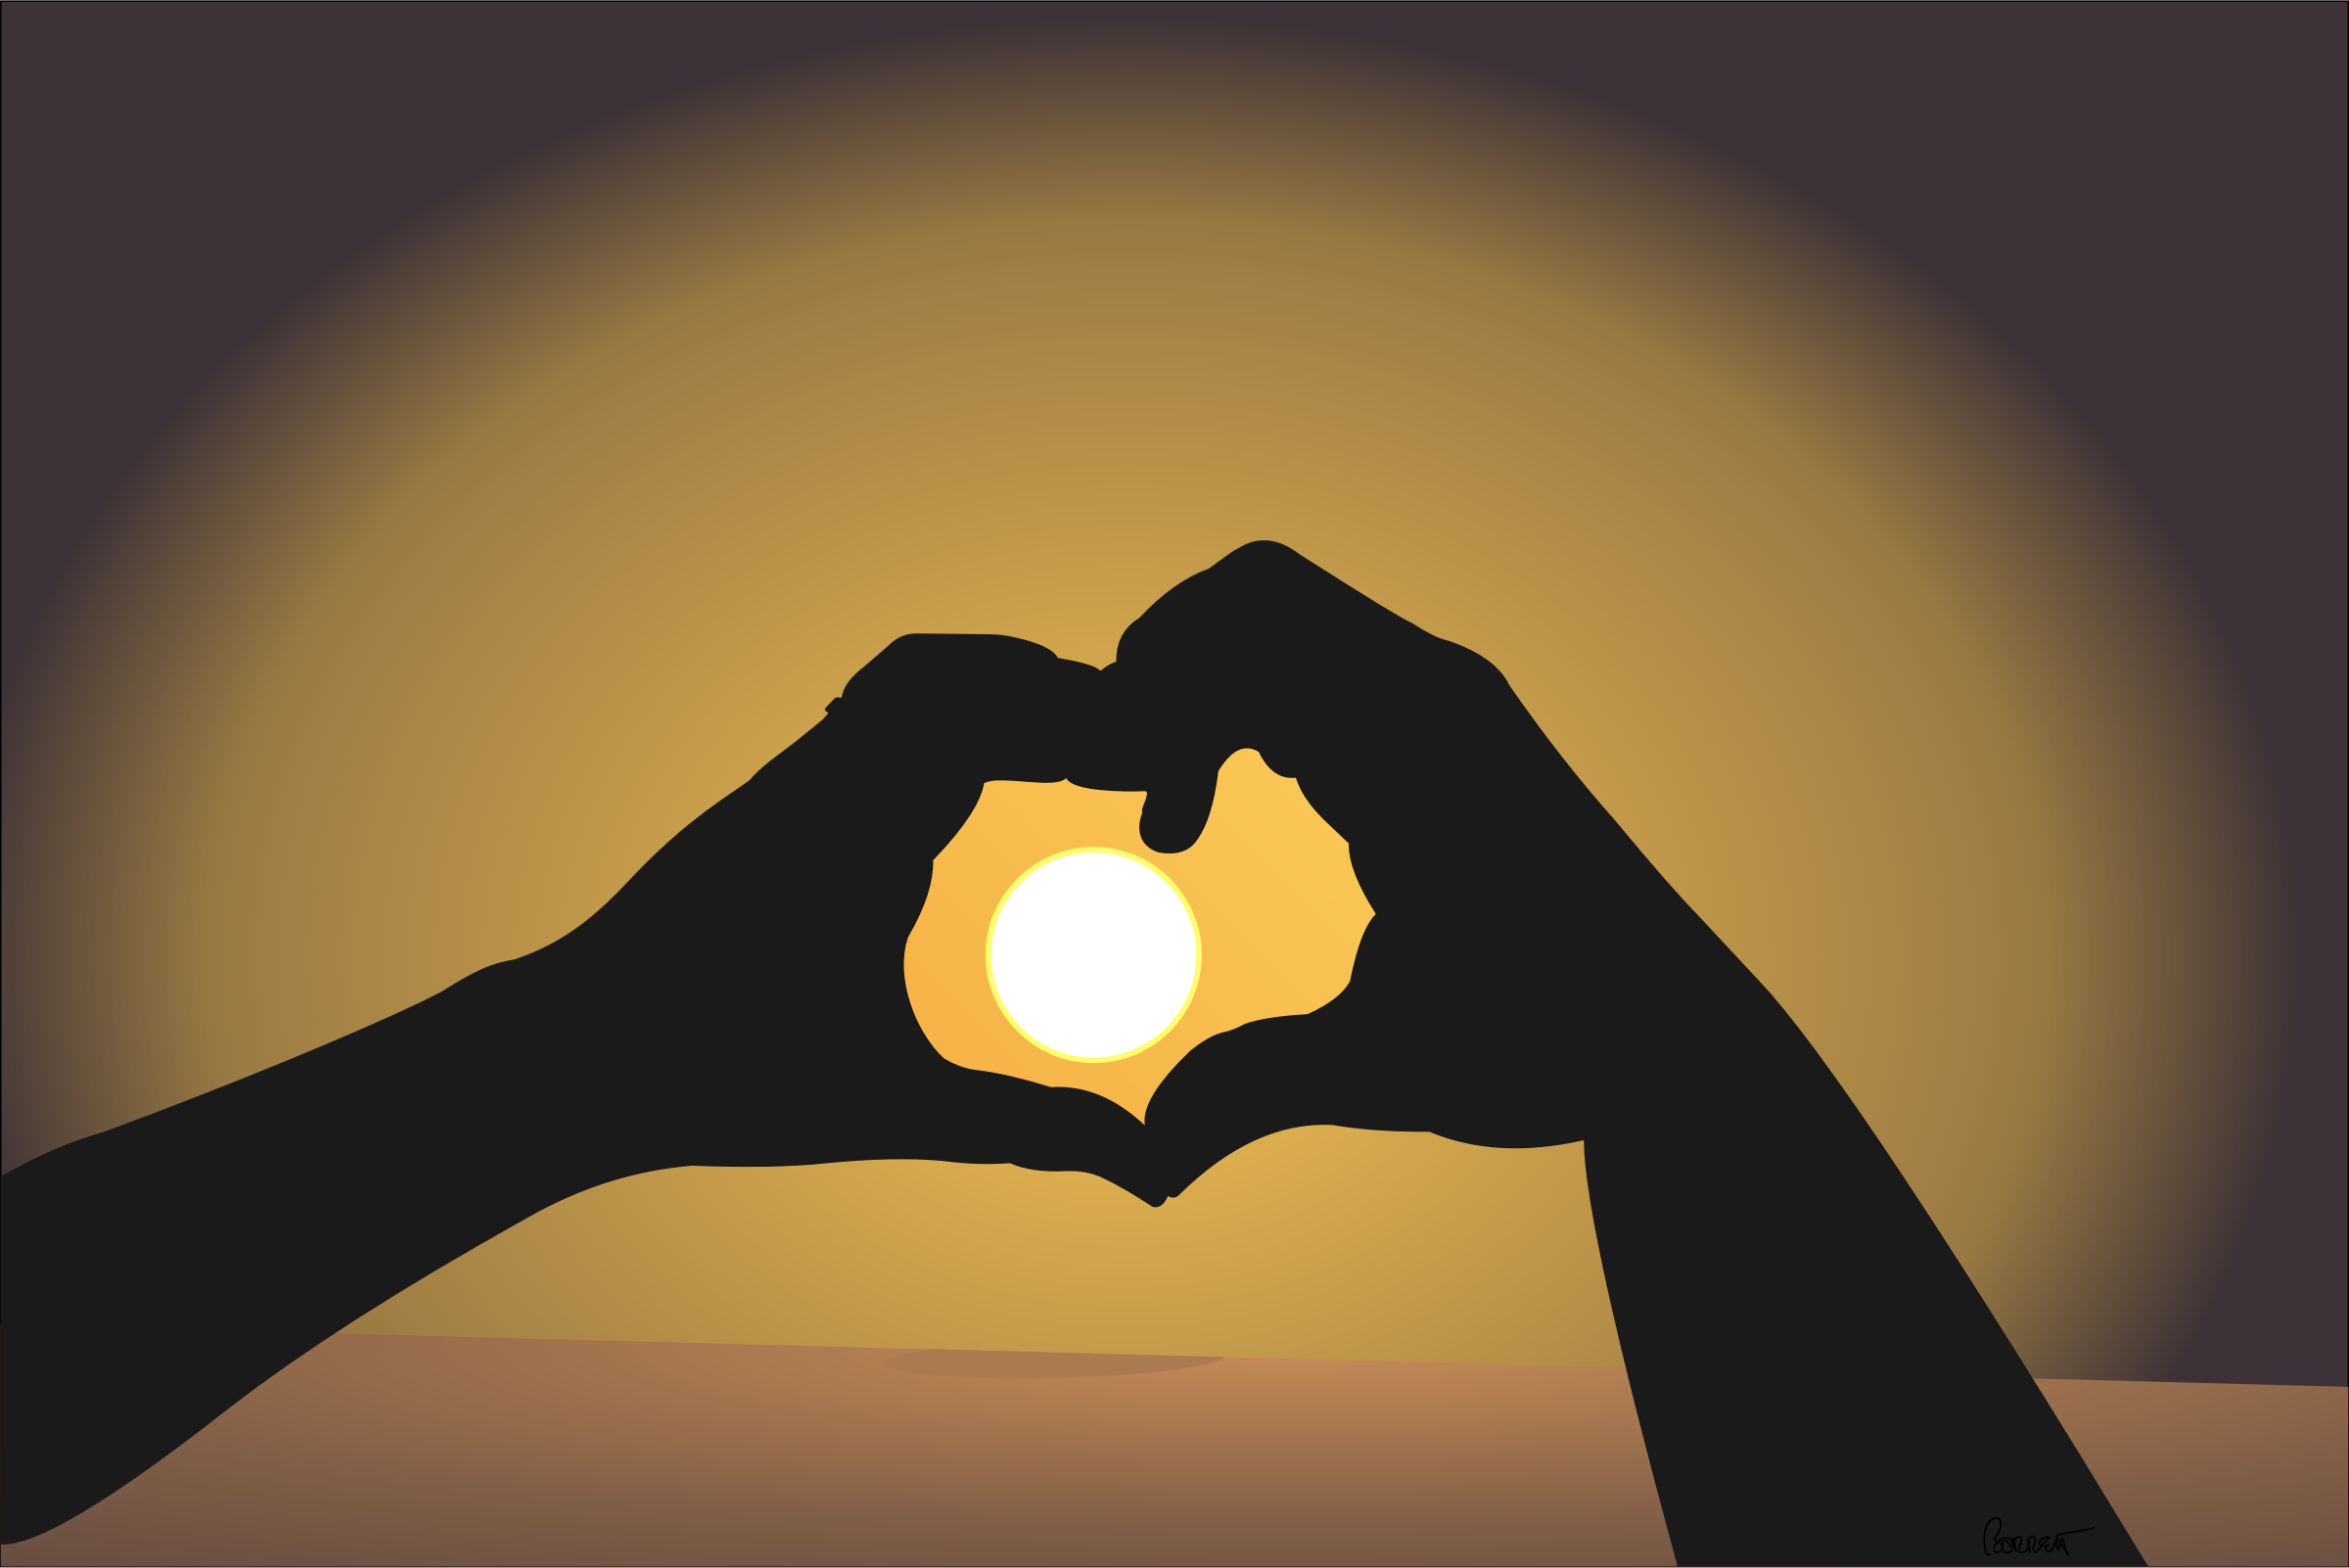 Heart-shaped clipart sun The Shaped Heart in Clipart